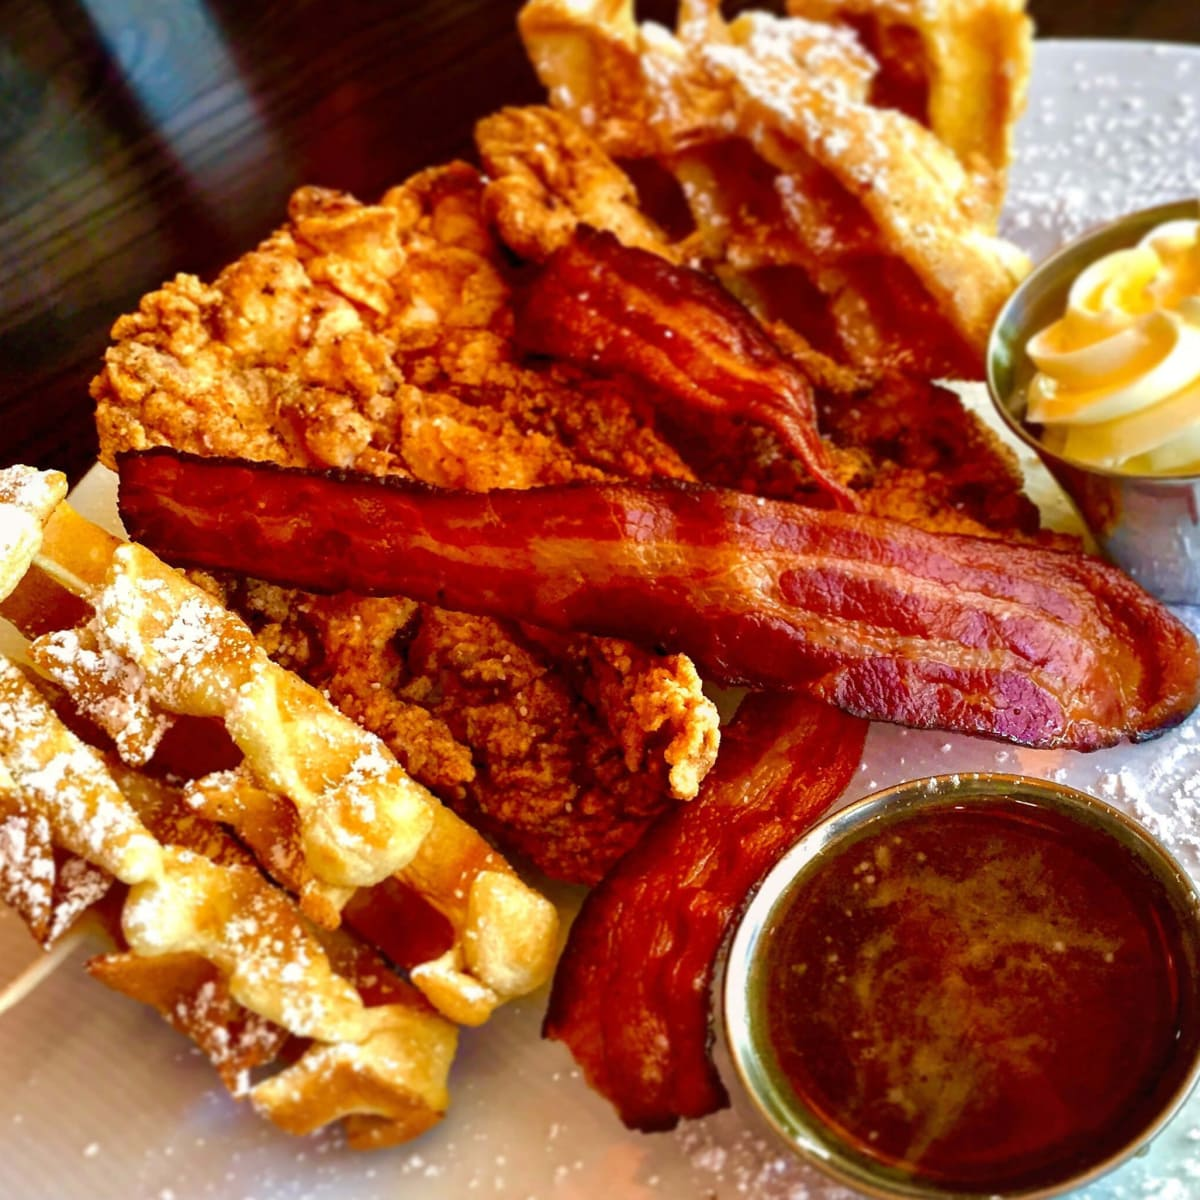 Gramma Minnie's Fried Chicken & Waffles from Jasper's